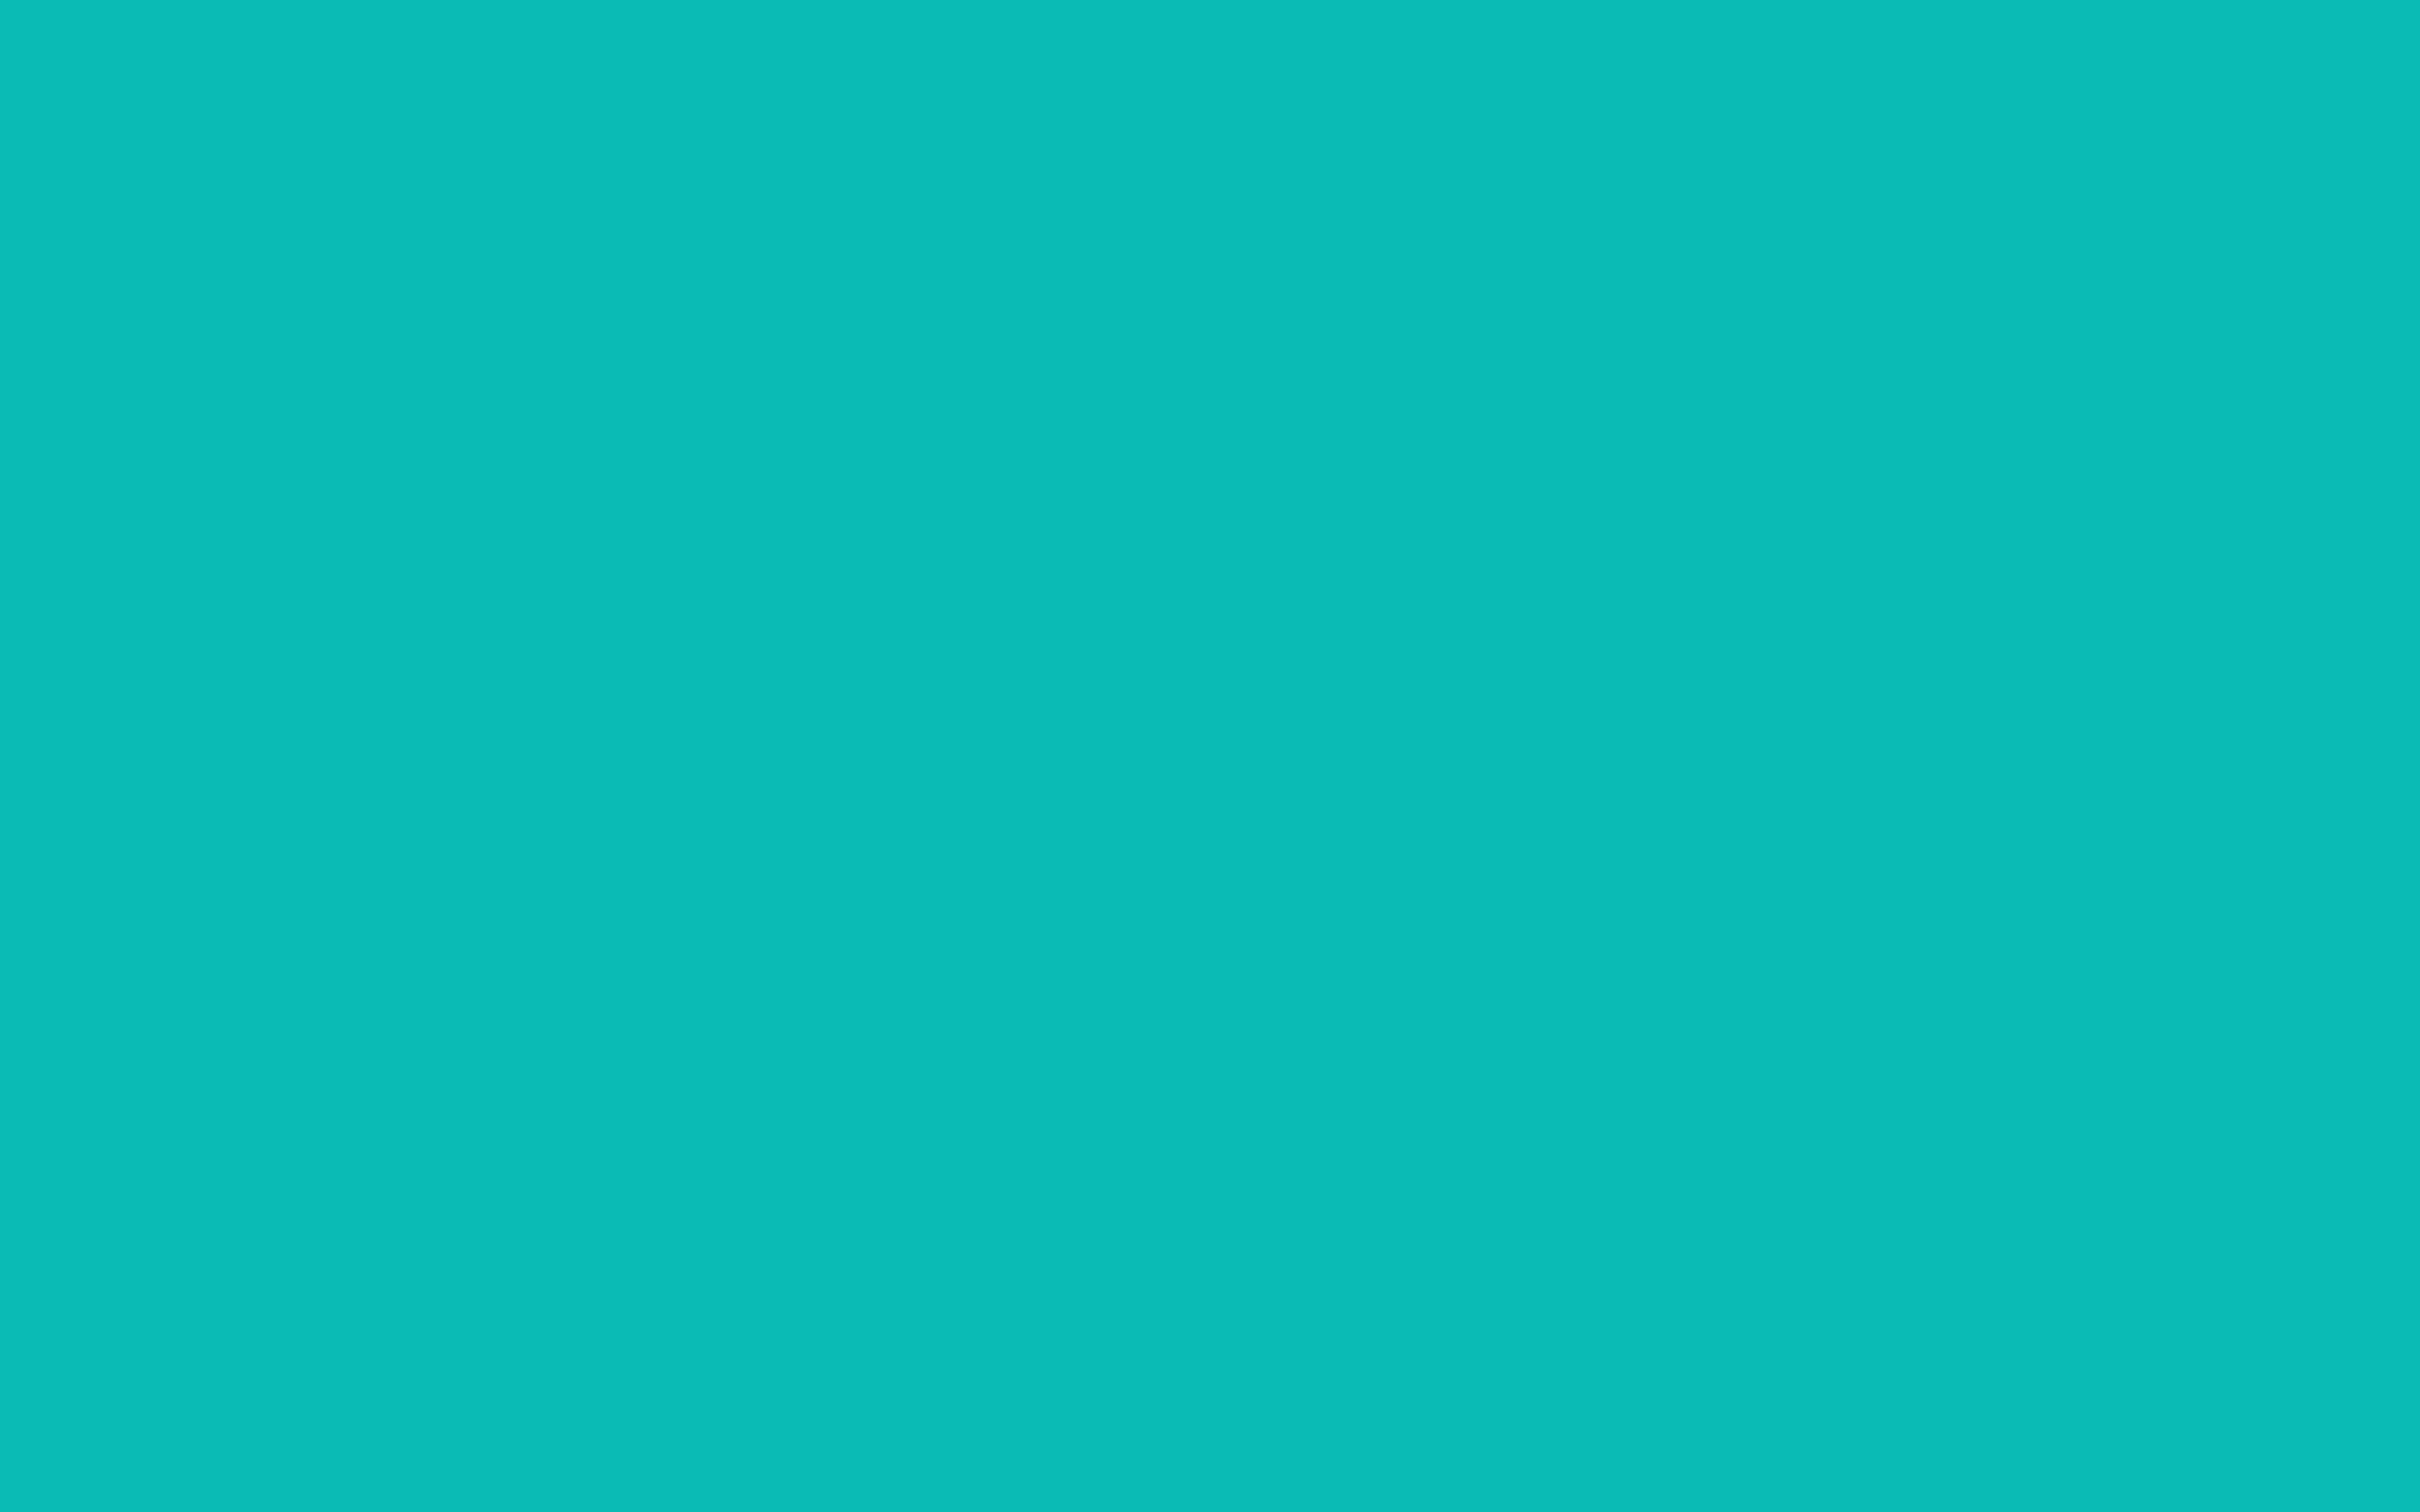 Solid Color Backgrounds Solid color ba 2880x1800